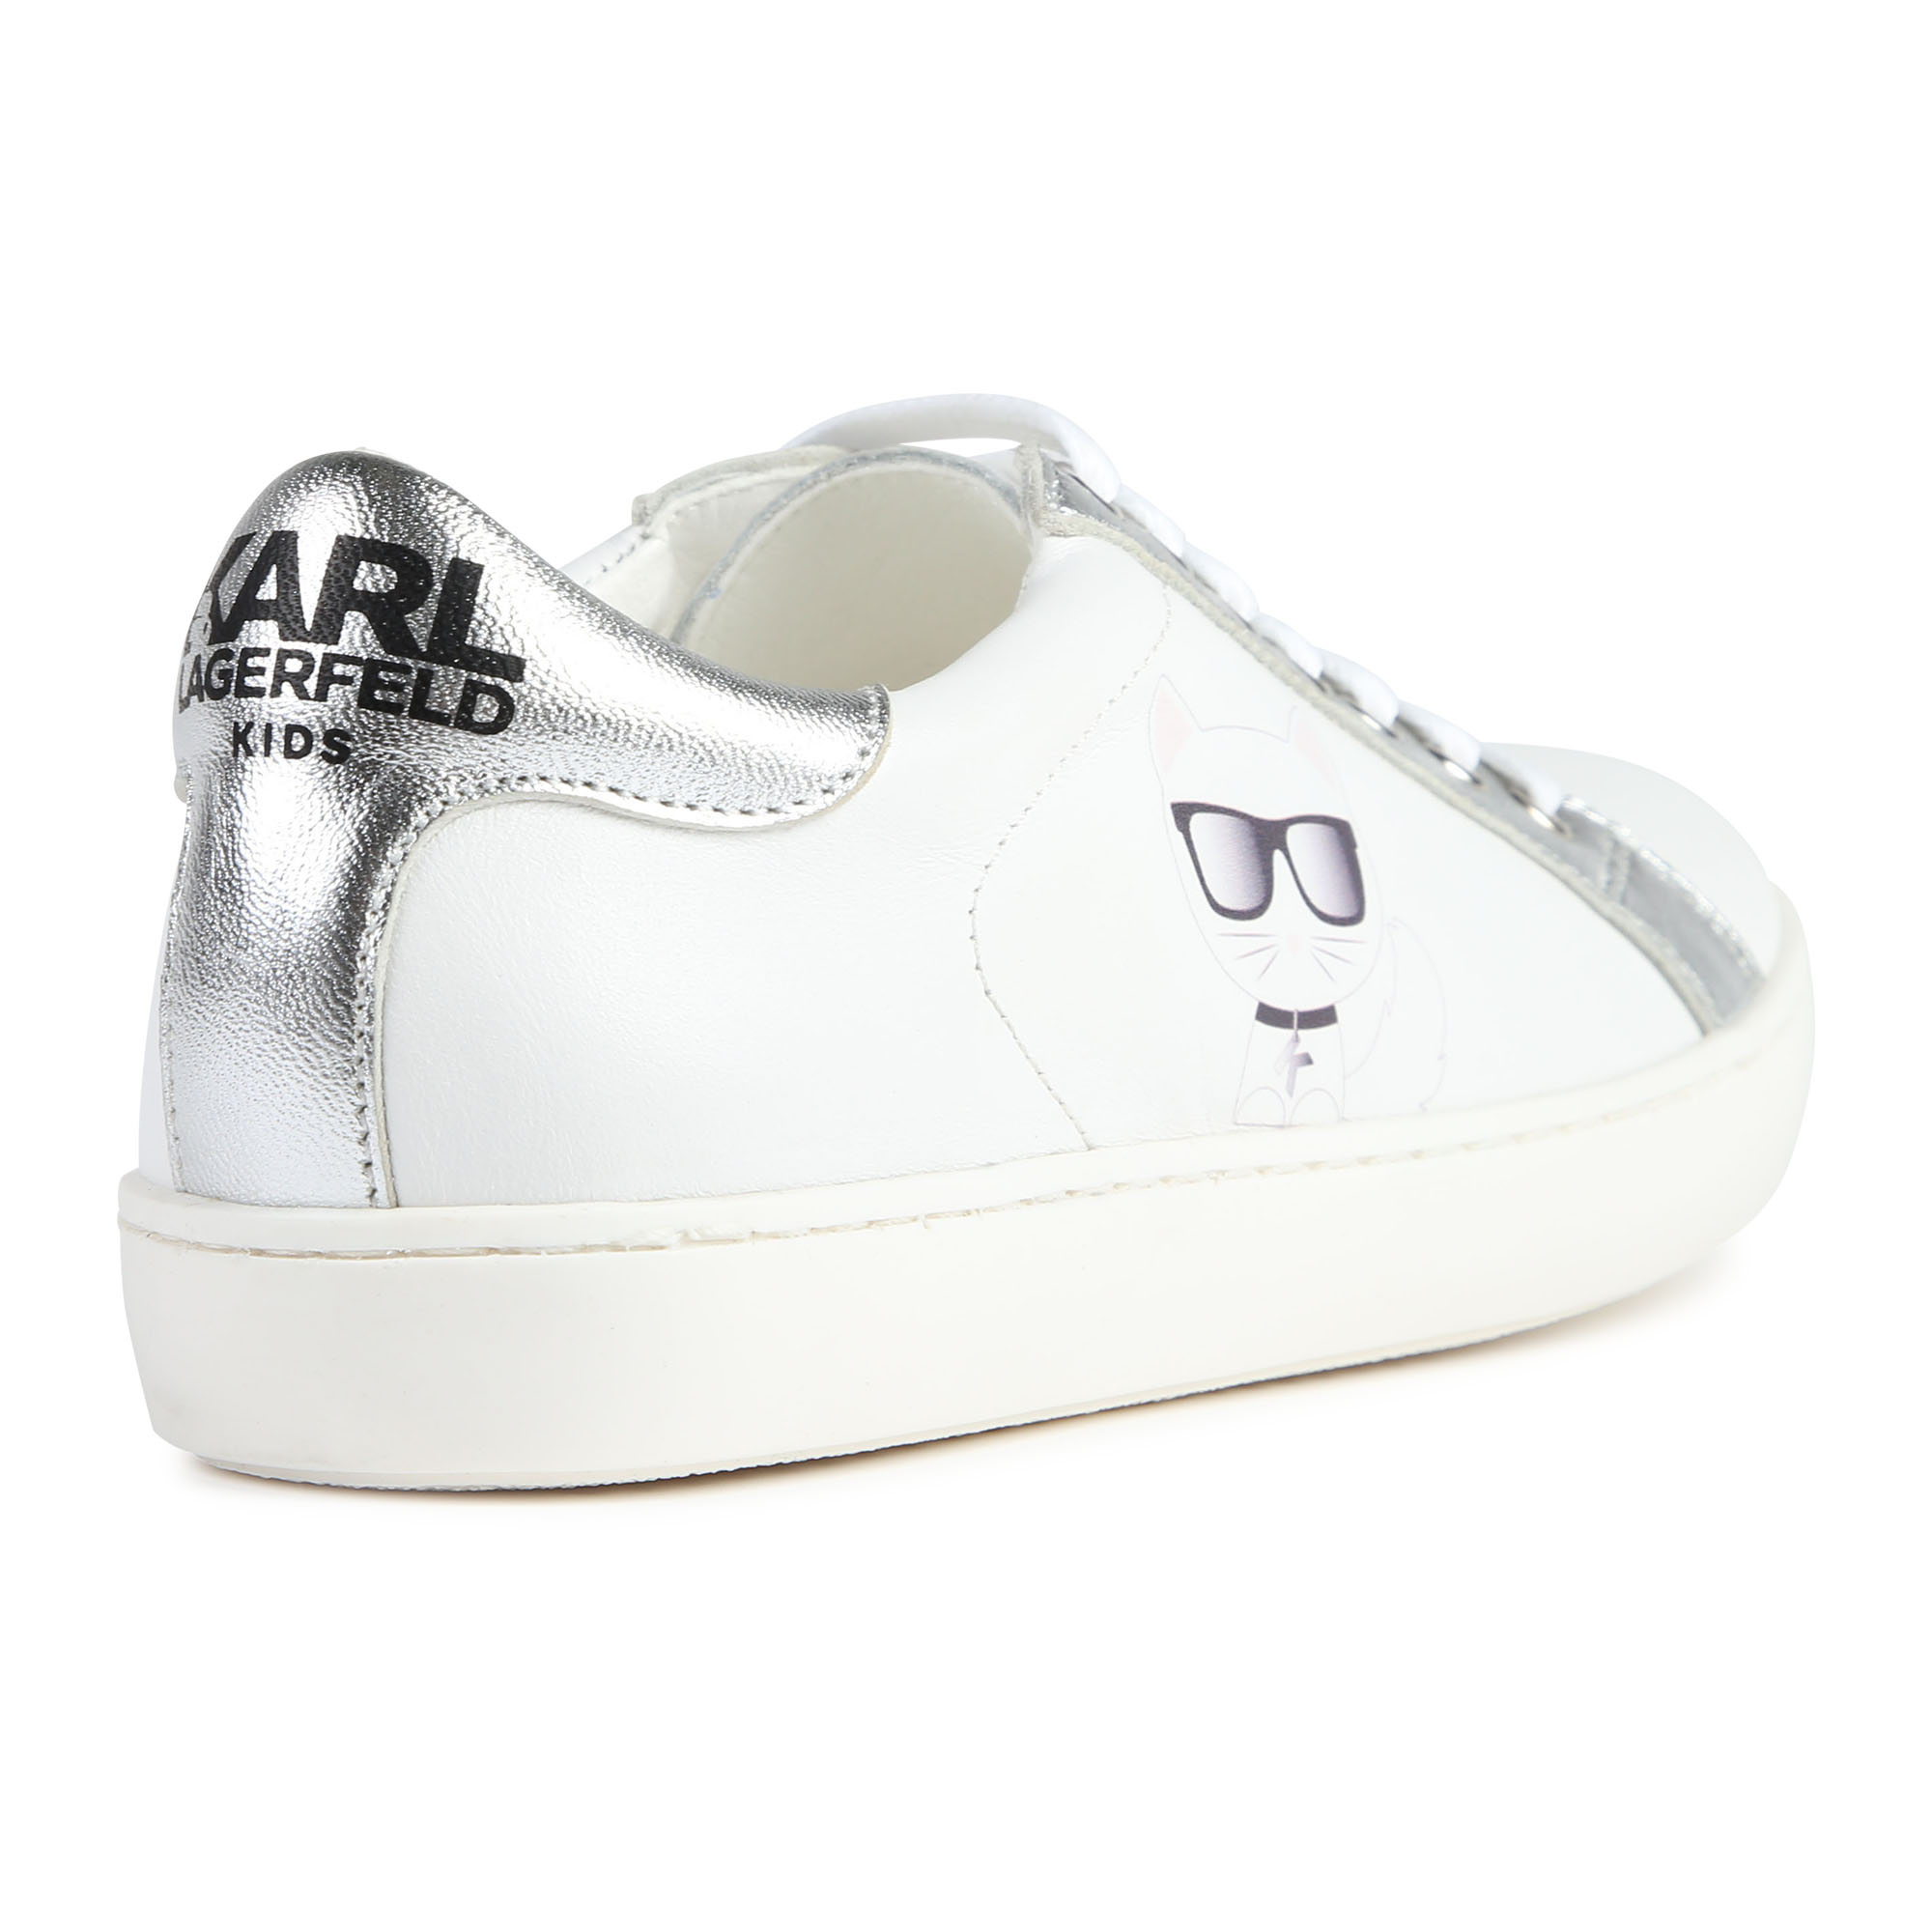 Low-top leather trainers KARL LAGERFELD KIDS for GIRL